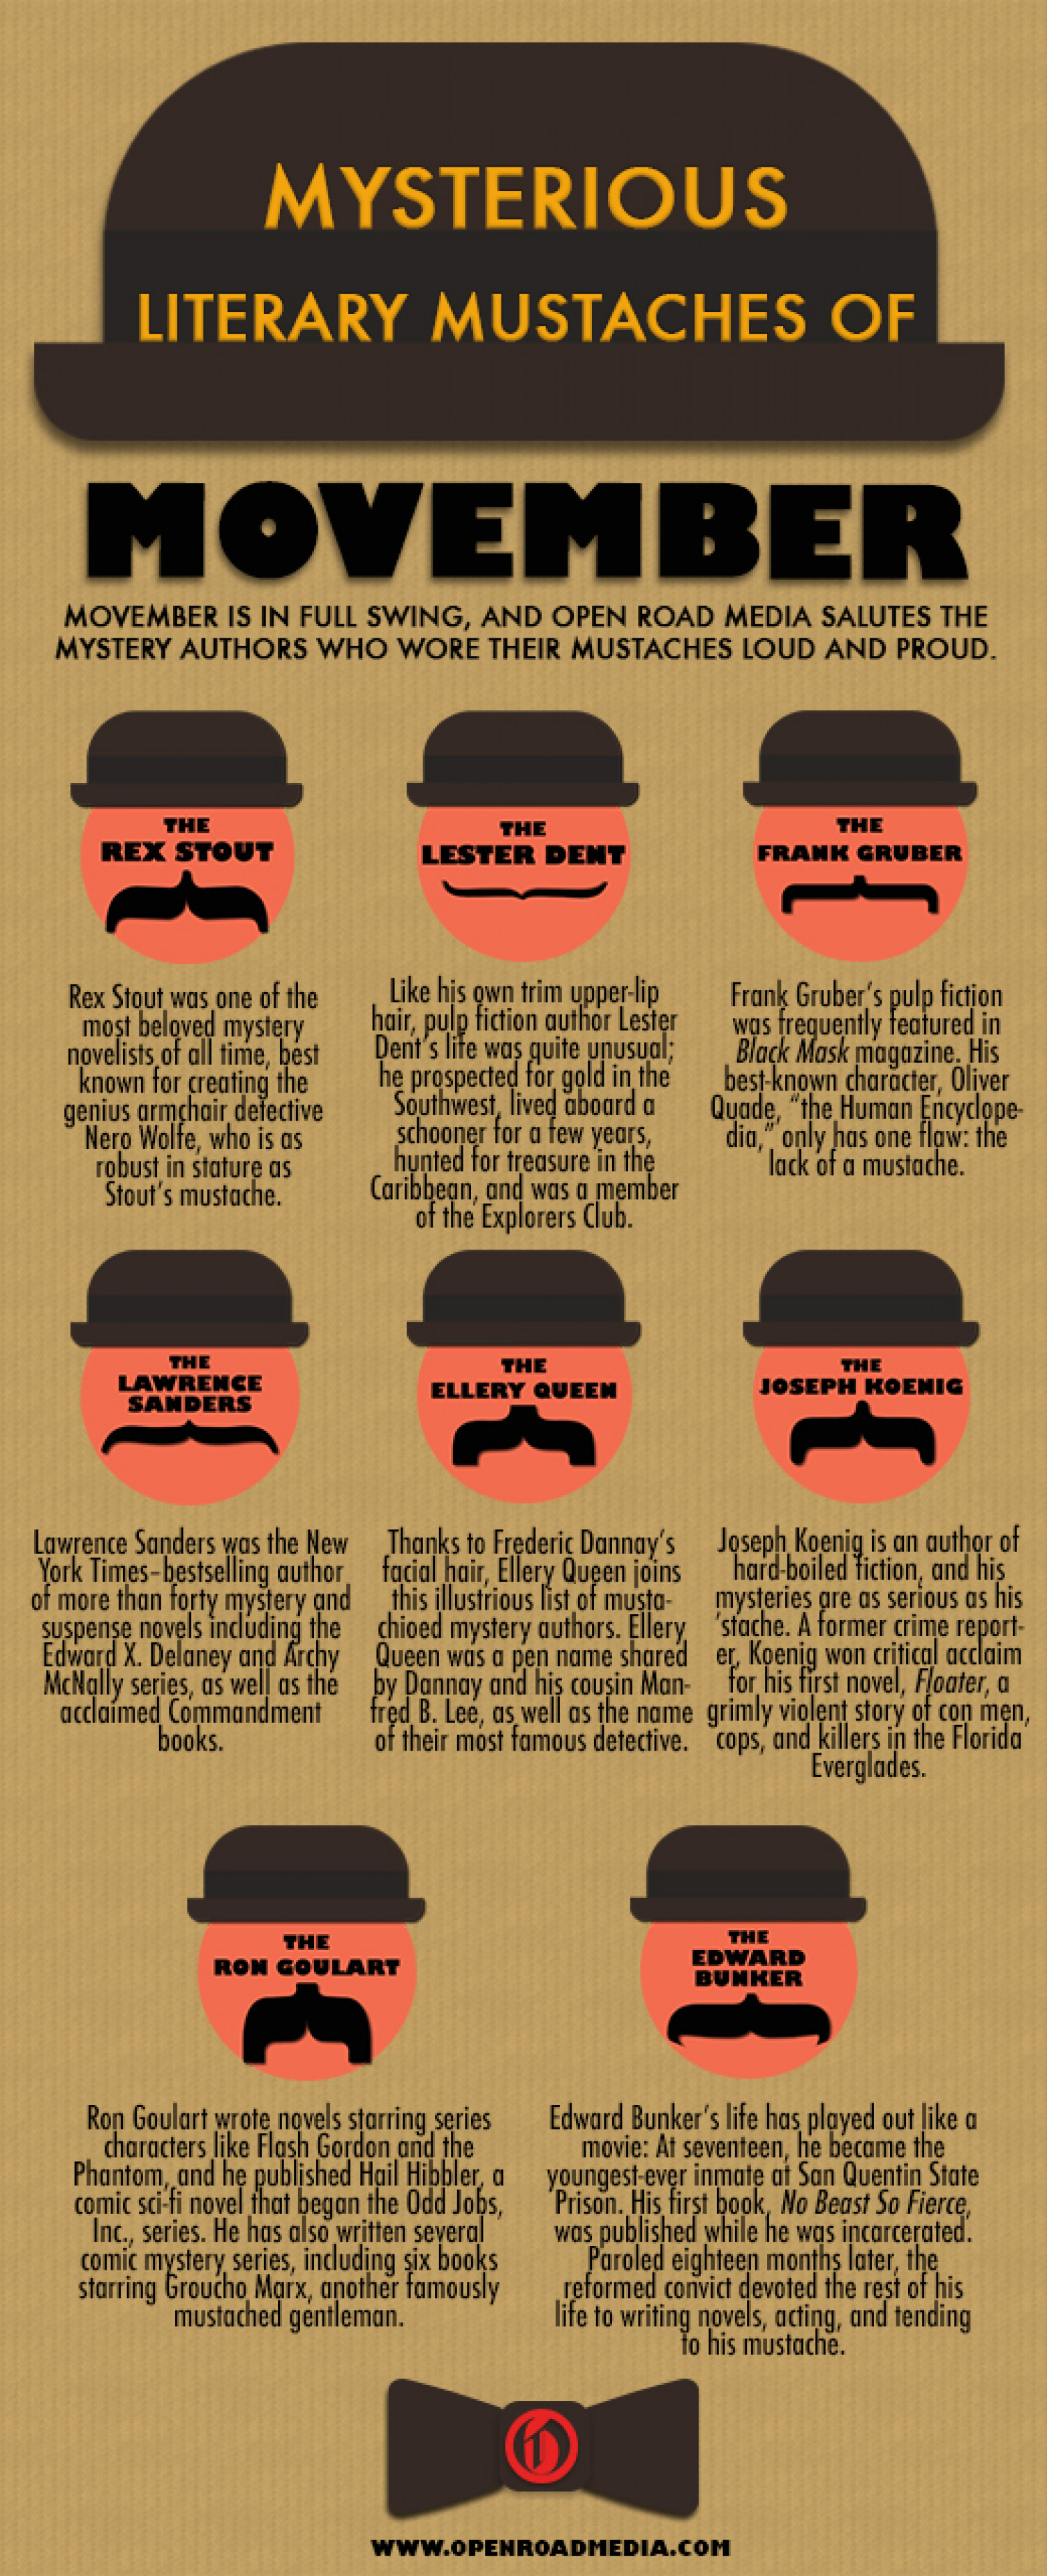 Mysterious Literary Mustaches of Movember Infographic